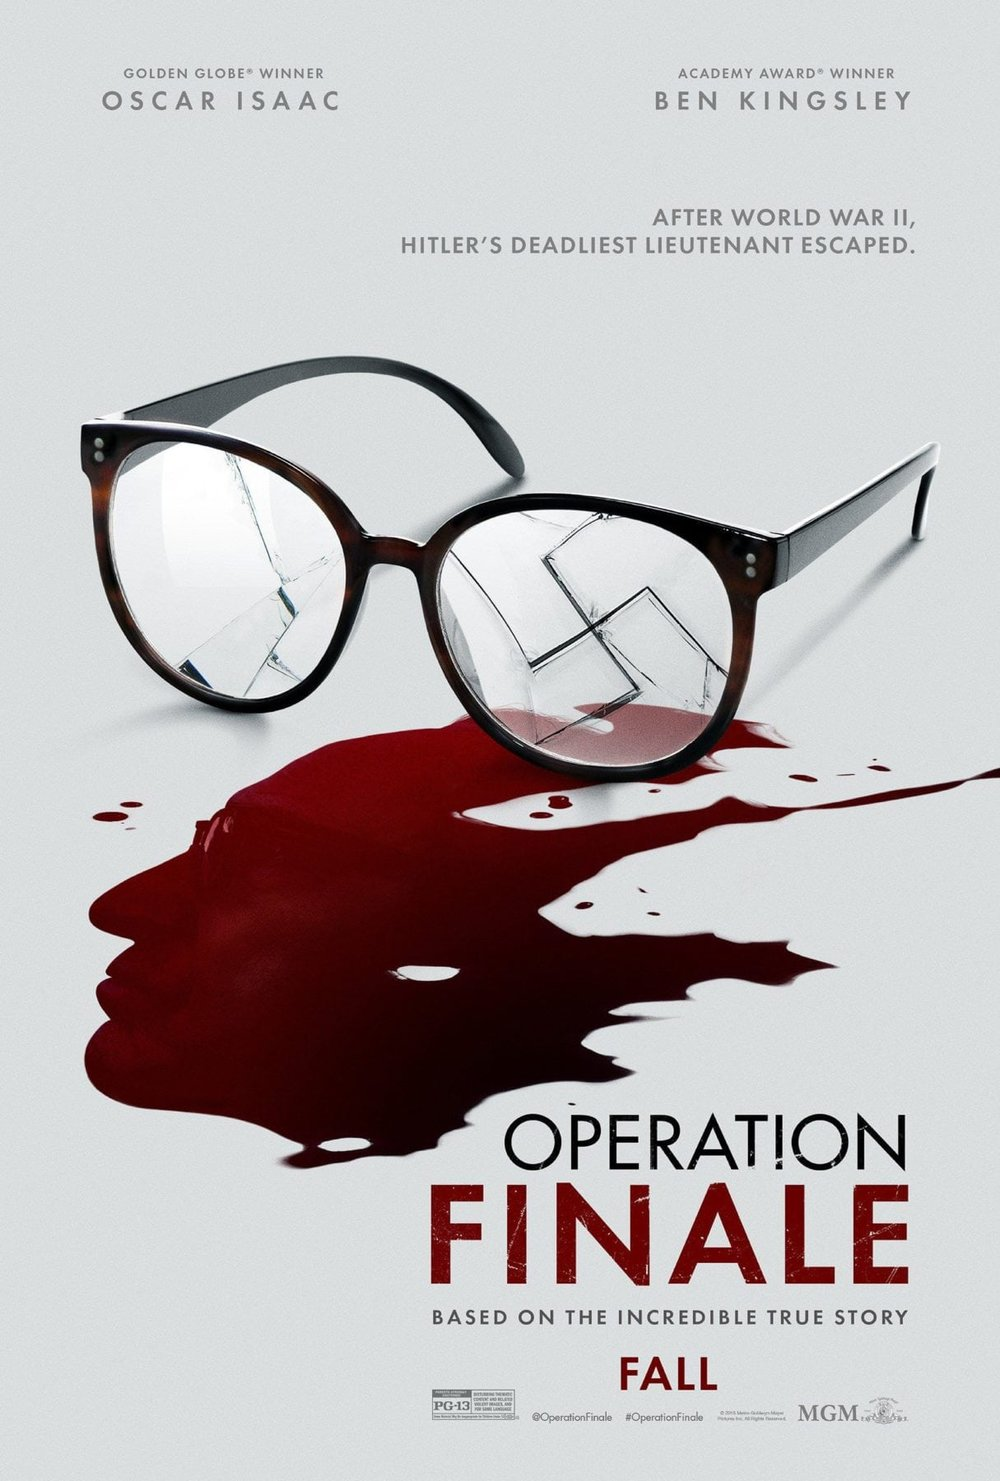 "Operation Finale - by Kathia WoodsOperation Finale is a new incarnation of the story of the capture of Adolf Eichmann a former SS officer also known as the architect of the final solution. This version stars Oscar Isaac from Star Wars fame as Peter Malkin and Ben Kinsley as Eichmann. In this retelling, we learn more about the team that captures Eichmann. It facilitates the connection of Family members lost in the camps with their mission. Some want to approach the manner with aggression while others want to pursue due process. Either way, the goal is justice.There are some challenges with this movie. The opening scene does not tie into the film. Also, there was a disconnect from why Malkin character was the dark sheep of the team. I can understand what Chris Weitz mission was with this movie, but there were moments when we needed to know more but received no explanation. An example of this unclarity is Klaus. He calls Eichmann his uncle but then later its revealed that's his father. The viewer is made to believe that Klaus accepts his father role in the war wholly and embraces being a Nazi as a good thing. Another one is his girlfriend Sylvia whom he meets in a movie theater interesting enough during a viewing of ""Imitation of Life."" Sylvia like Annie is passing. Instead of as another race but another religion. Why would a girl raised in humanity embrace the evil history of the fatherland want to date a boy that is racist?Lastly, how is Argentina allowing meetings of Nazi party members with the support of the government? The questions arise already at the beginning of the movie. The overall issue with this is the film is that we leave having more questions than answers. Here is one of the most villainous war criminals of WW2 but if you're not familiar with the story are still uninformed about his being. Also, why was this trial held in Israel over Germany or the Hauge?Concerning performances, Isaac is stable as Melkin. Ben Kingsley is a gifted actor was not the best fit as Eichmann. Eichmann is German, and Kinsley retains his British Accent throughout the film. These stories are important because we if we don't learn from history, we are doomed to repeat it.Diversity- 5 I felt we could have had more understanding of the Jewish culture and why it was so crucial to all to capture this man. We received generalities but not specifics.A scale of 1-10= 6"